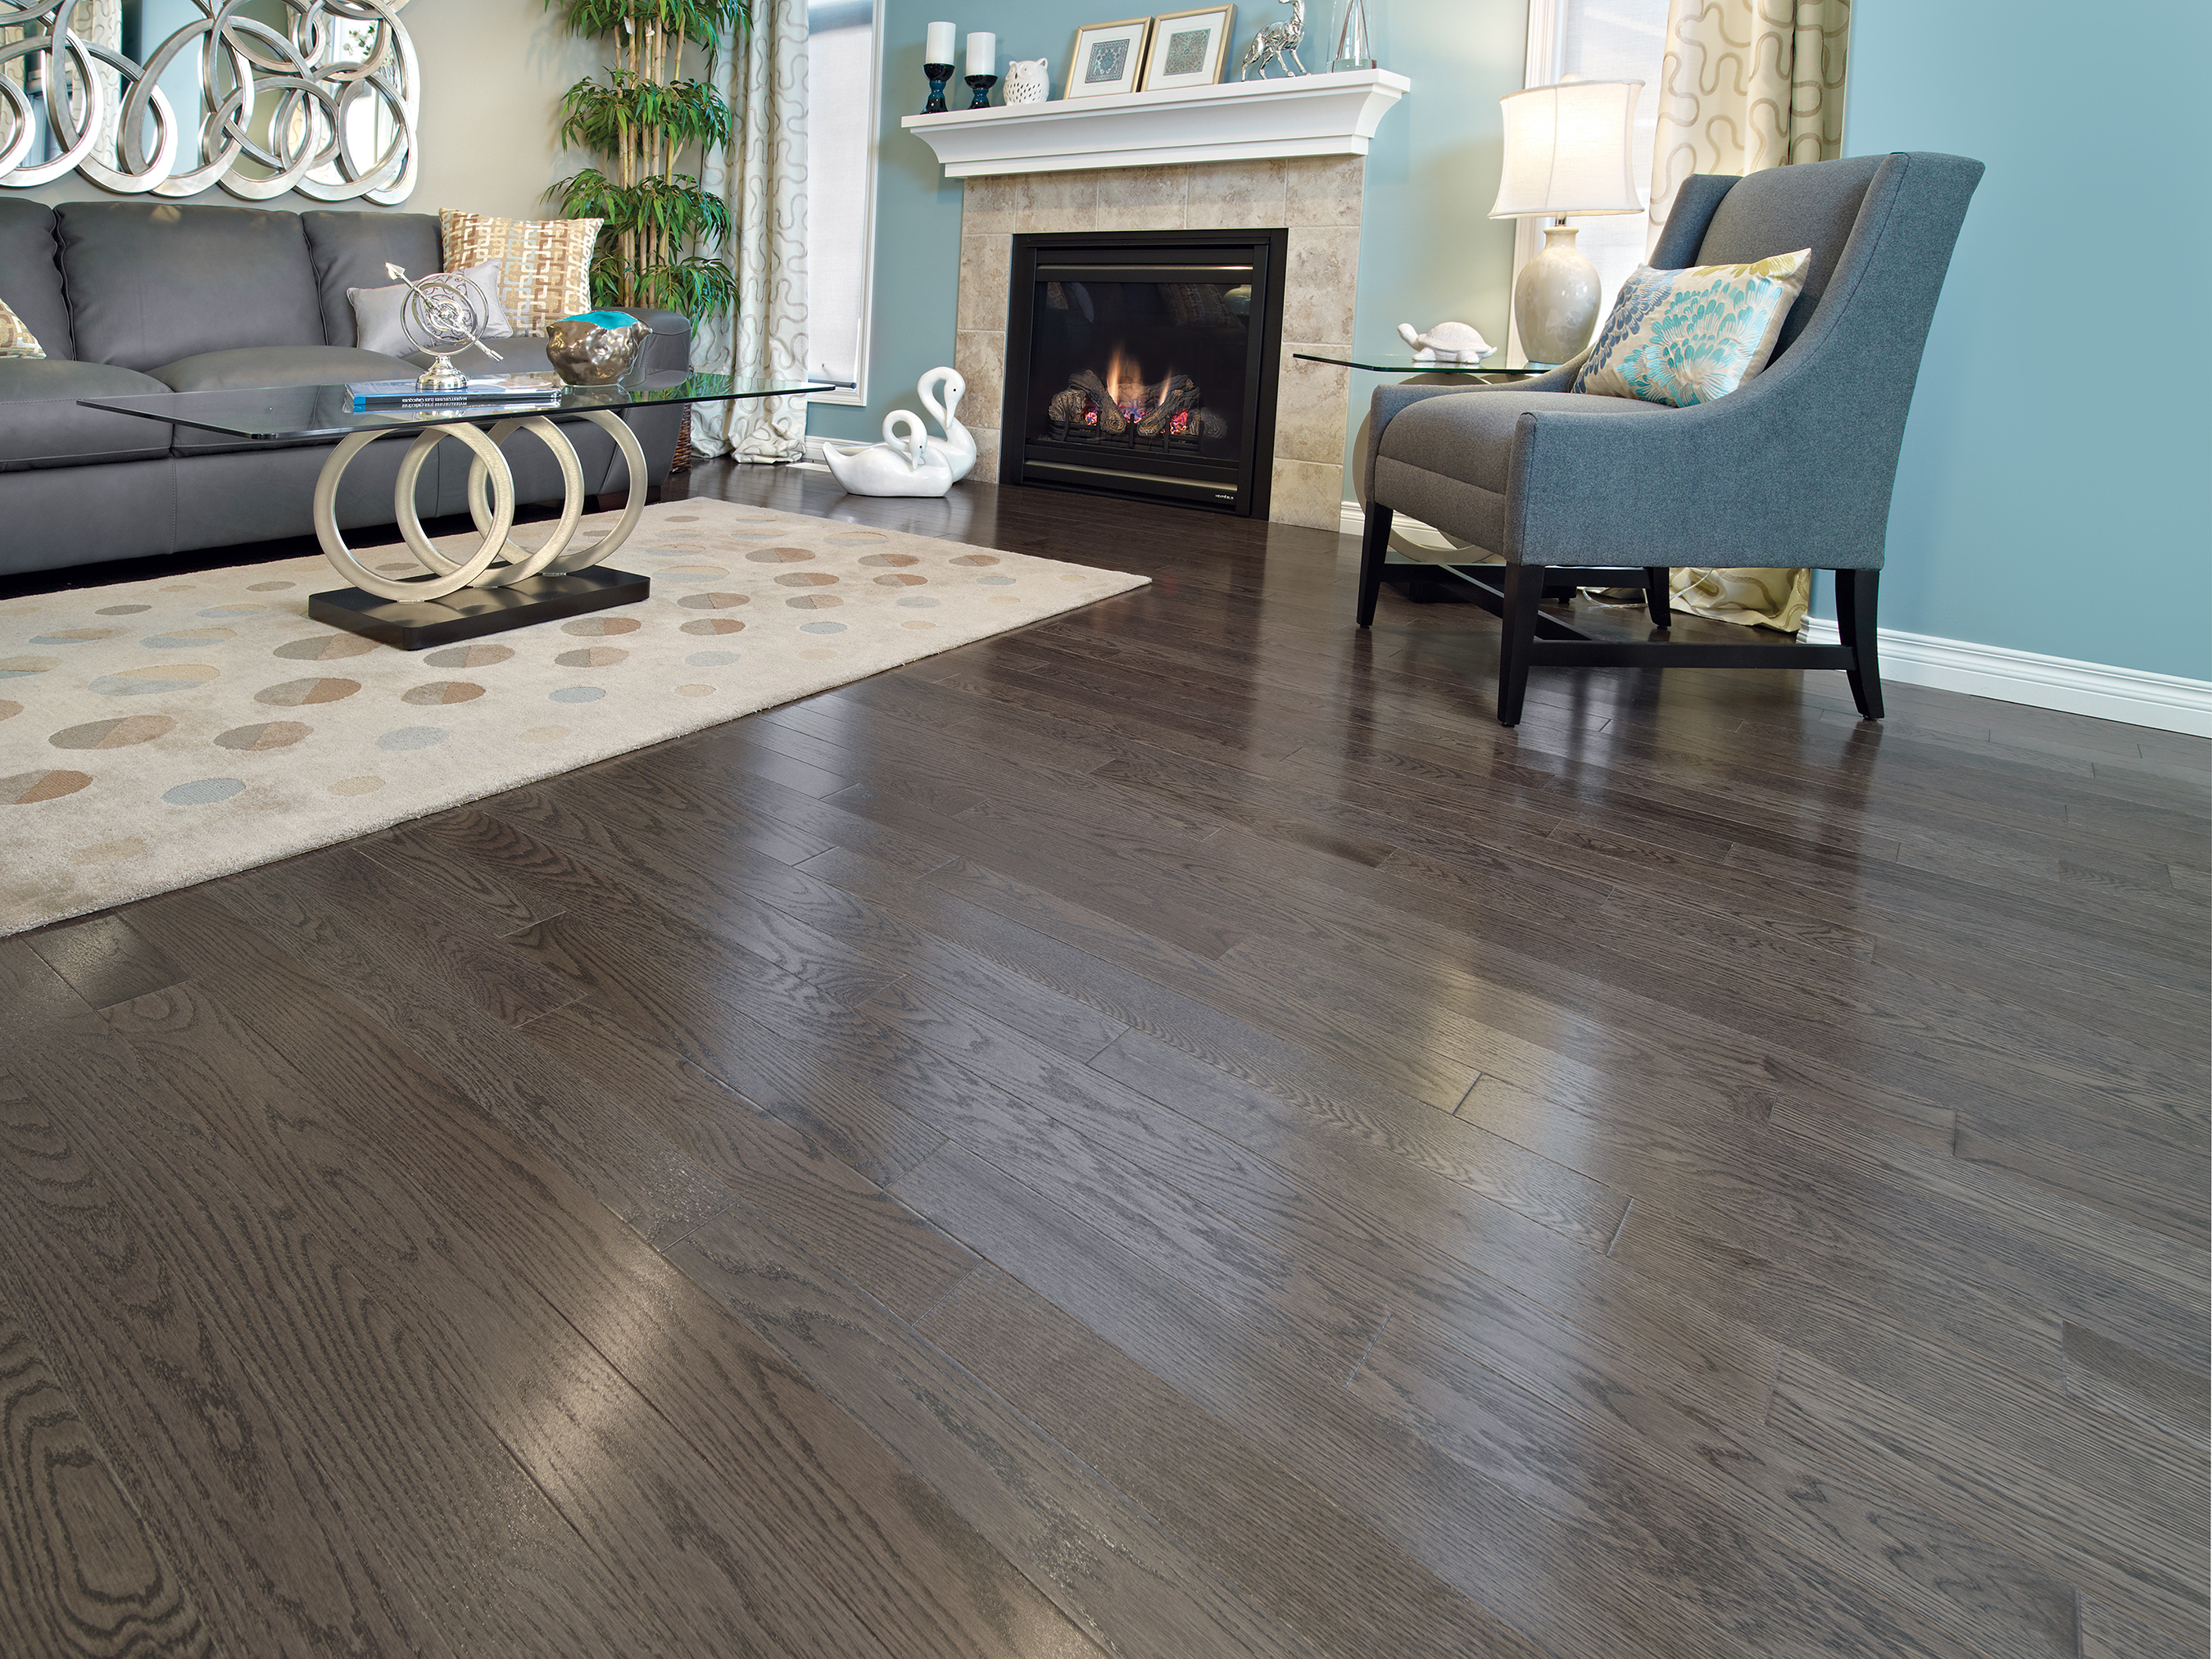 Red oak charcoal mirage hardwood floors call for special for Mirage wood floors